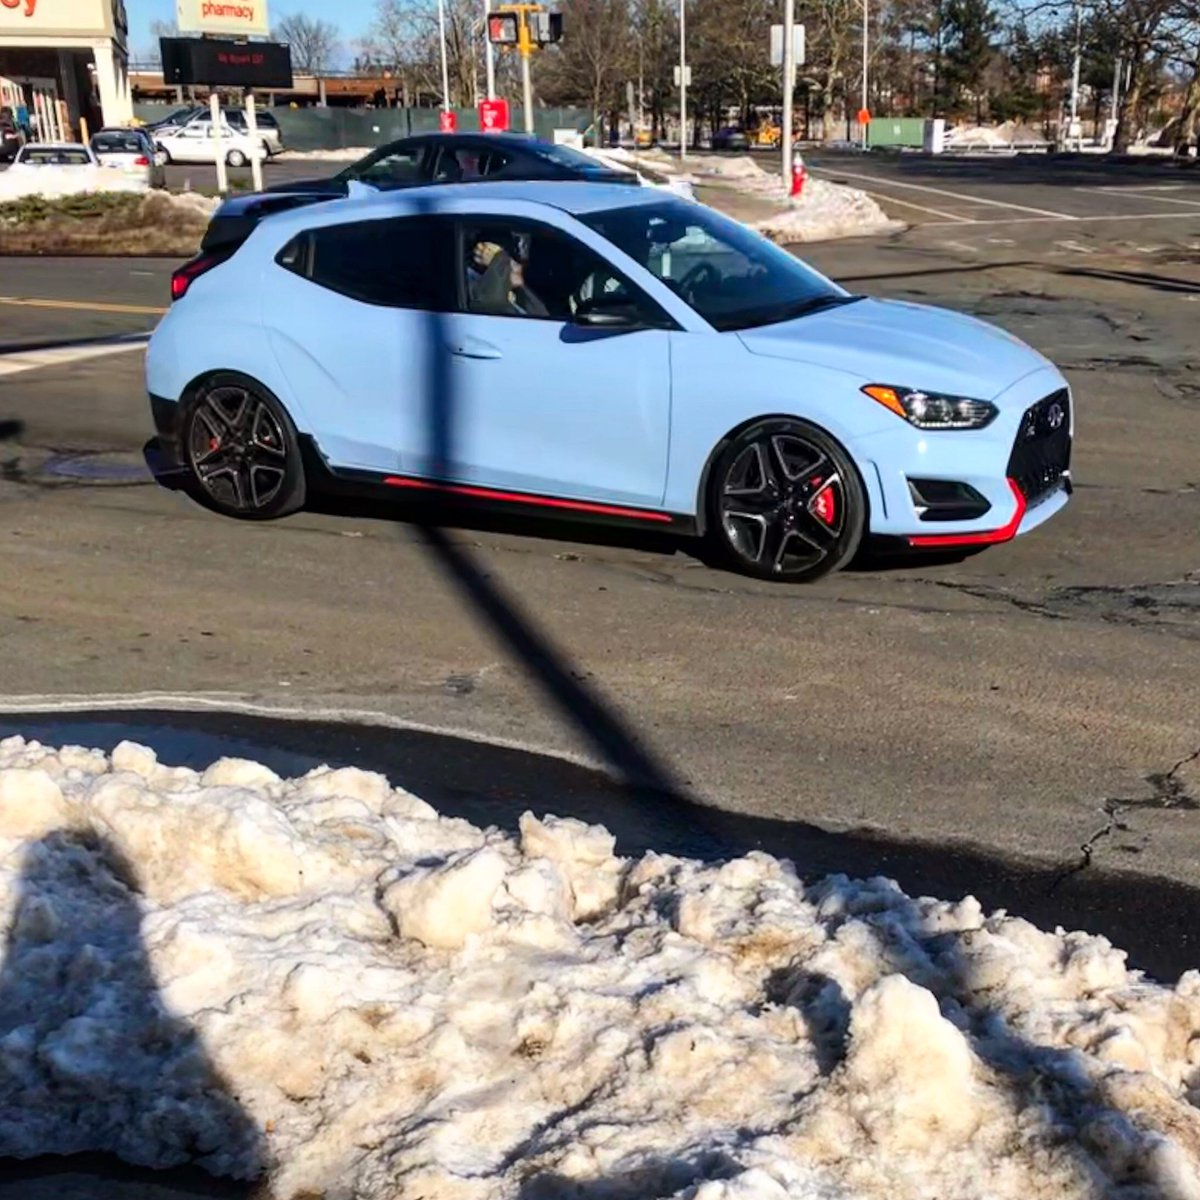 Happy #ValentineDay everyone. I may be celebrating alone, but I did manage to get a picture of a @Hyundai Veloster N on my way to class. Such an underrated car. ❤️